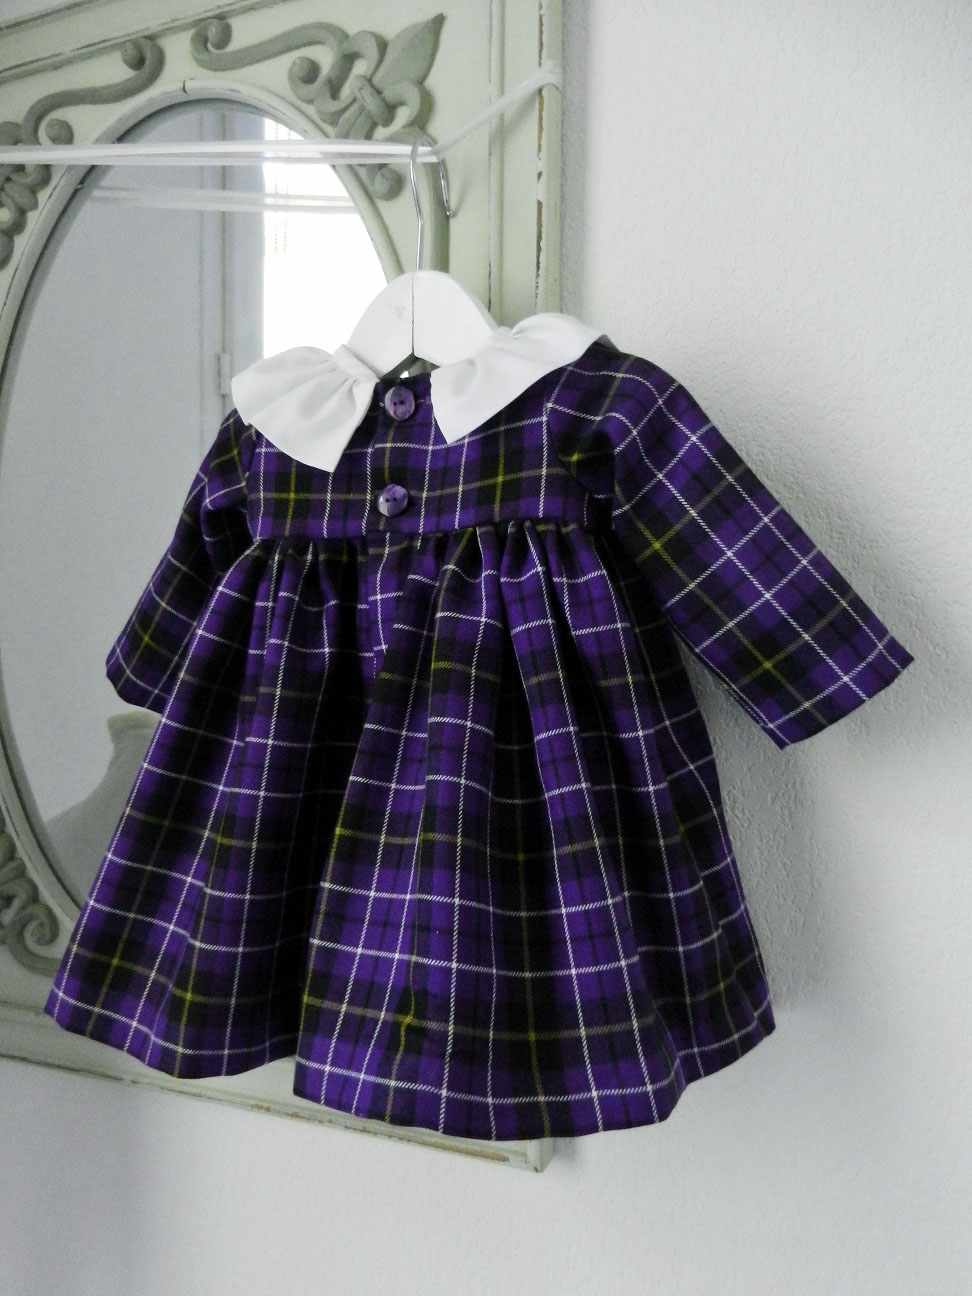 Duchesse or ange doa 281 robe bebe tartan violet col fronce blanc baby dress purple tartan white frilled collar c